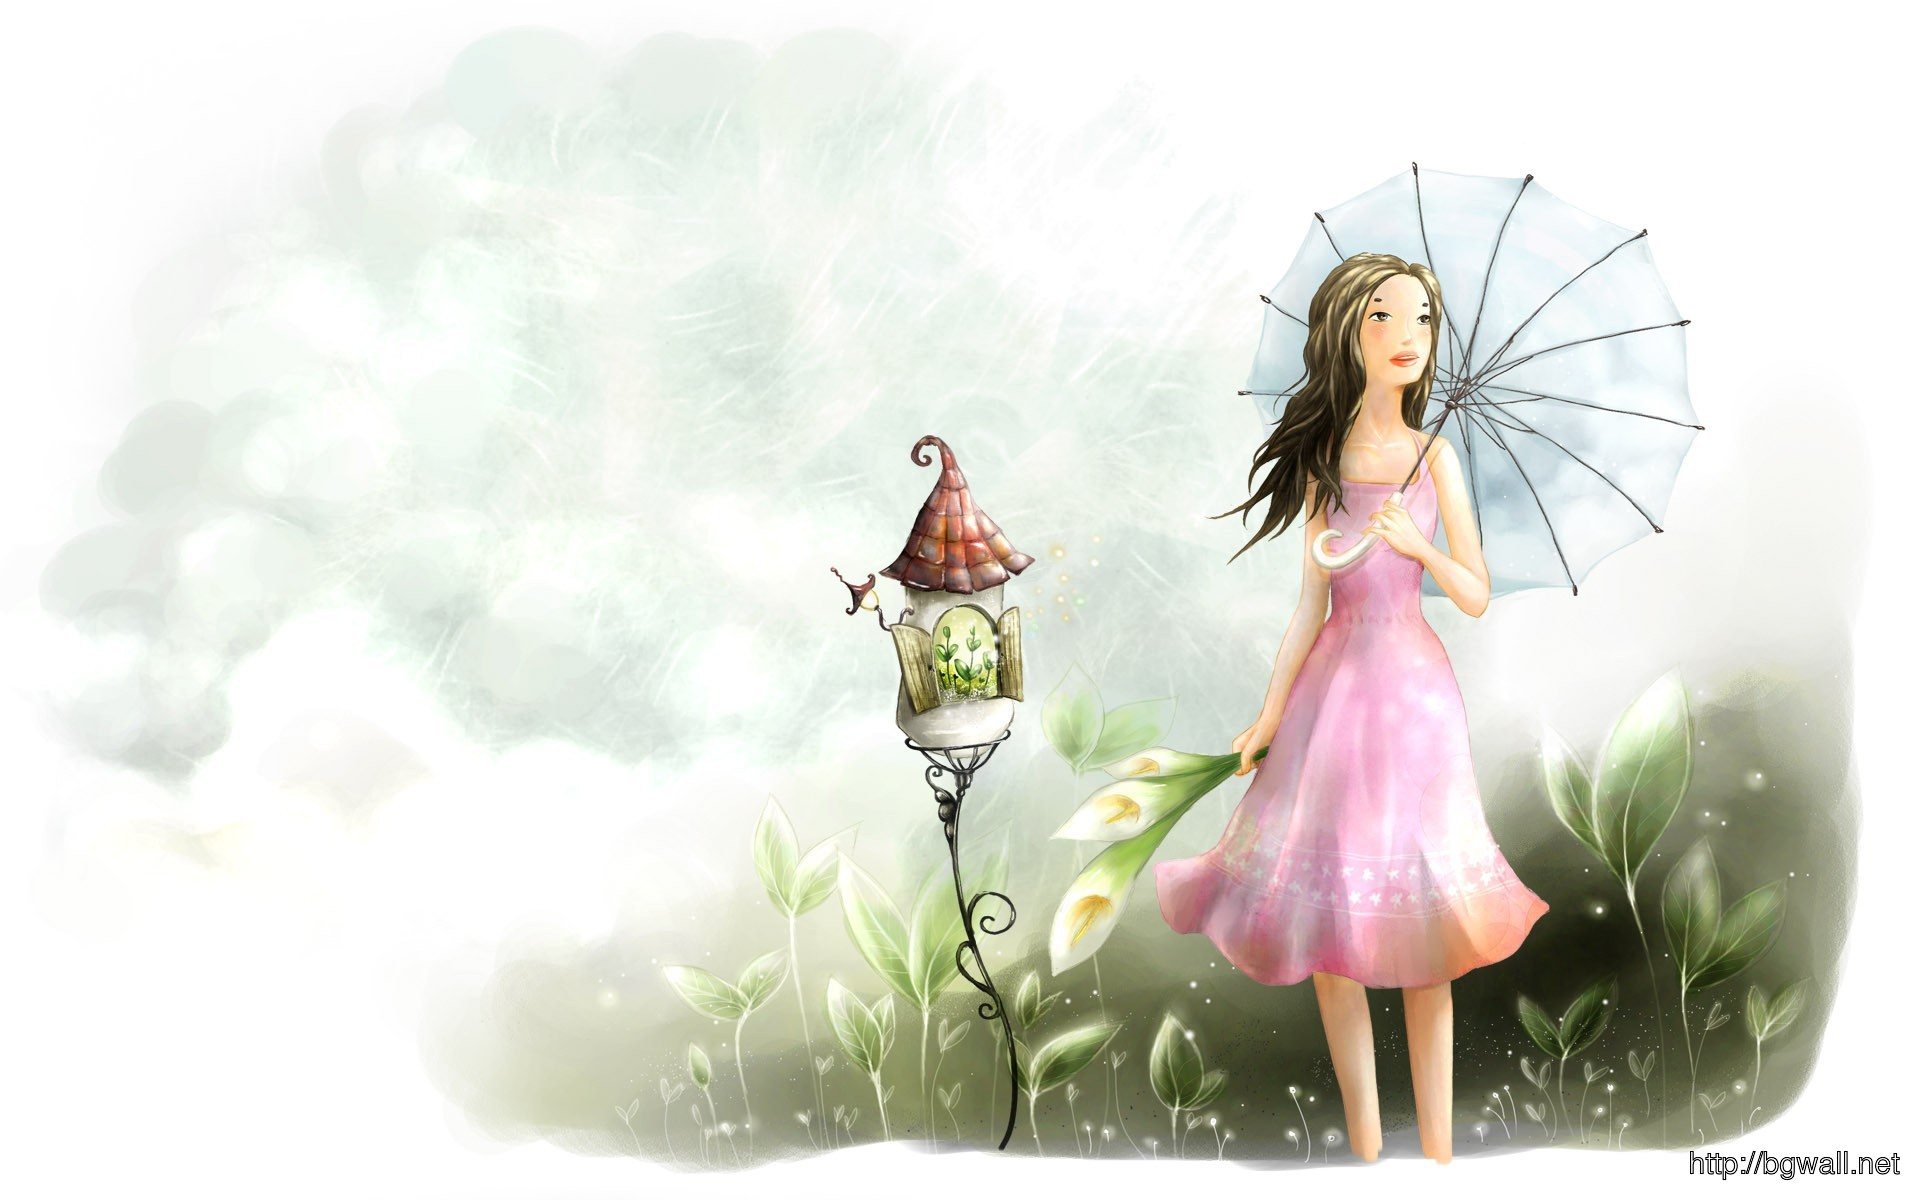 Cute laptop wallpapers for girls 74 images - A cute wallpaper ...